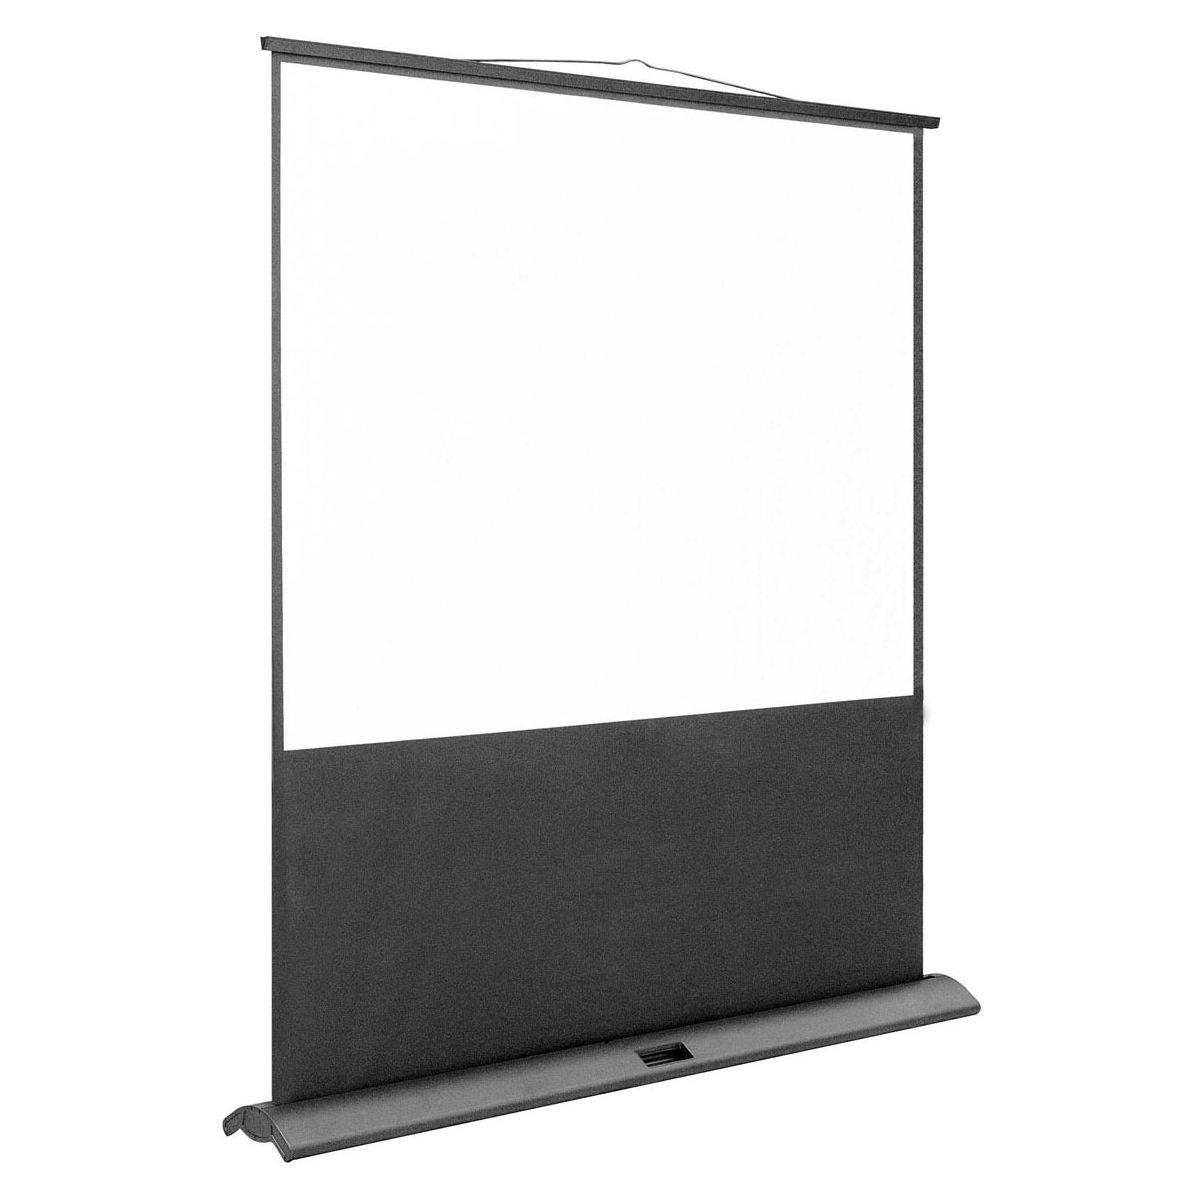 Ecran de projection oray fly duo 150x200 - 20% de remise imm�diate avec le code : deal20 (photo)